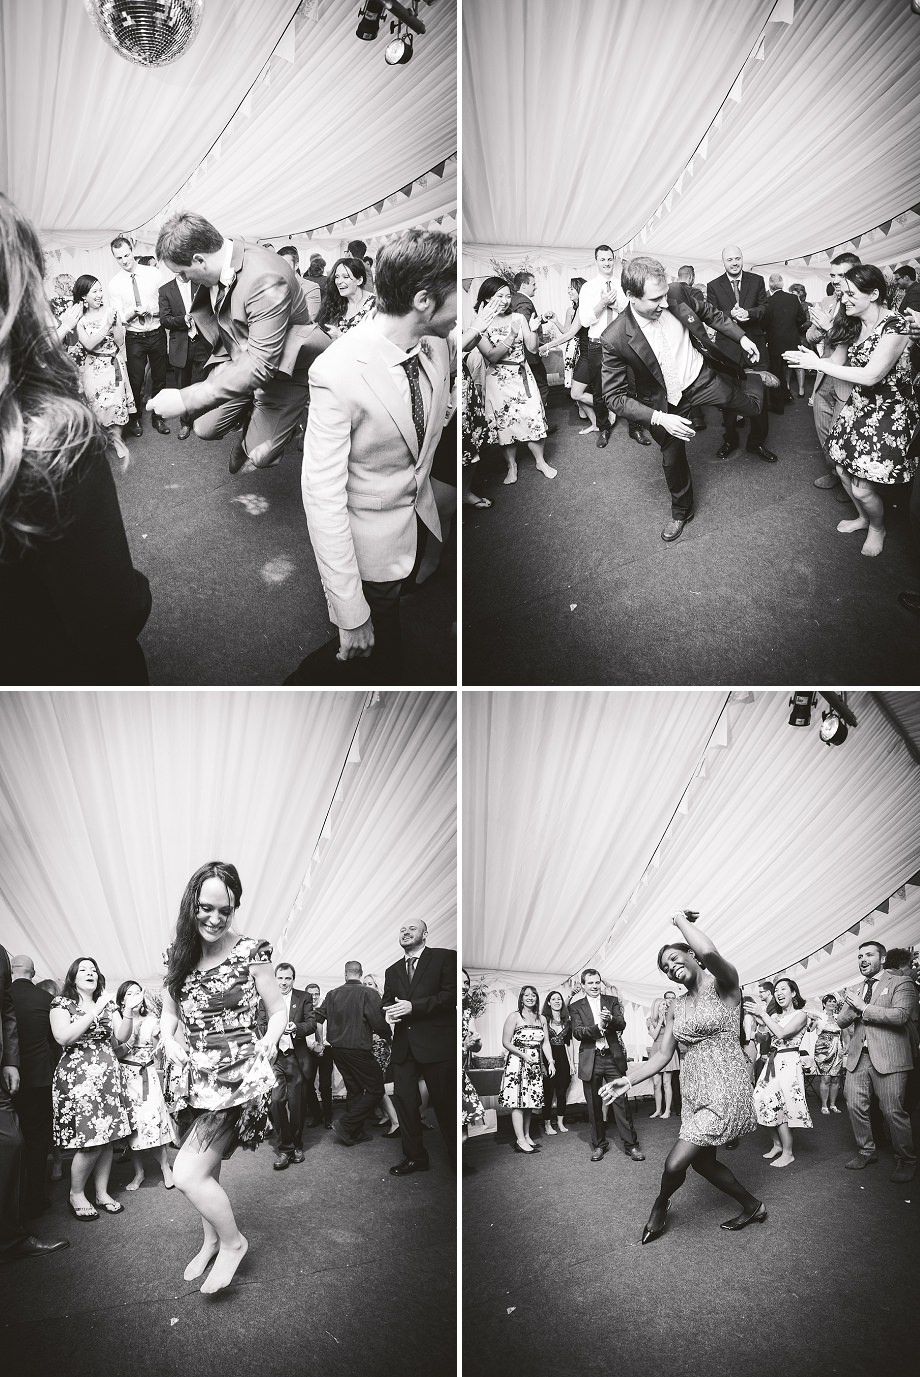 southwest wedding photography, wedmore wedding photos, vintage wedding photographer, summer weddings in somerset, ceilidh